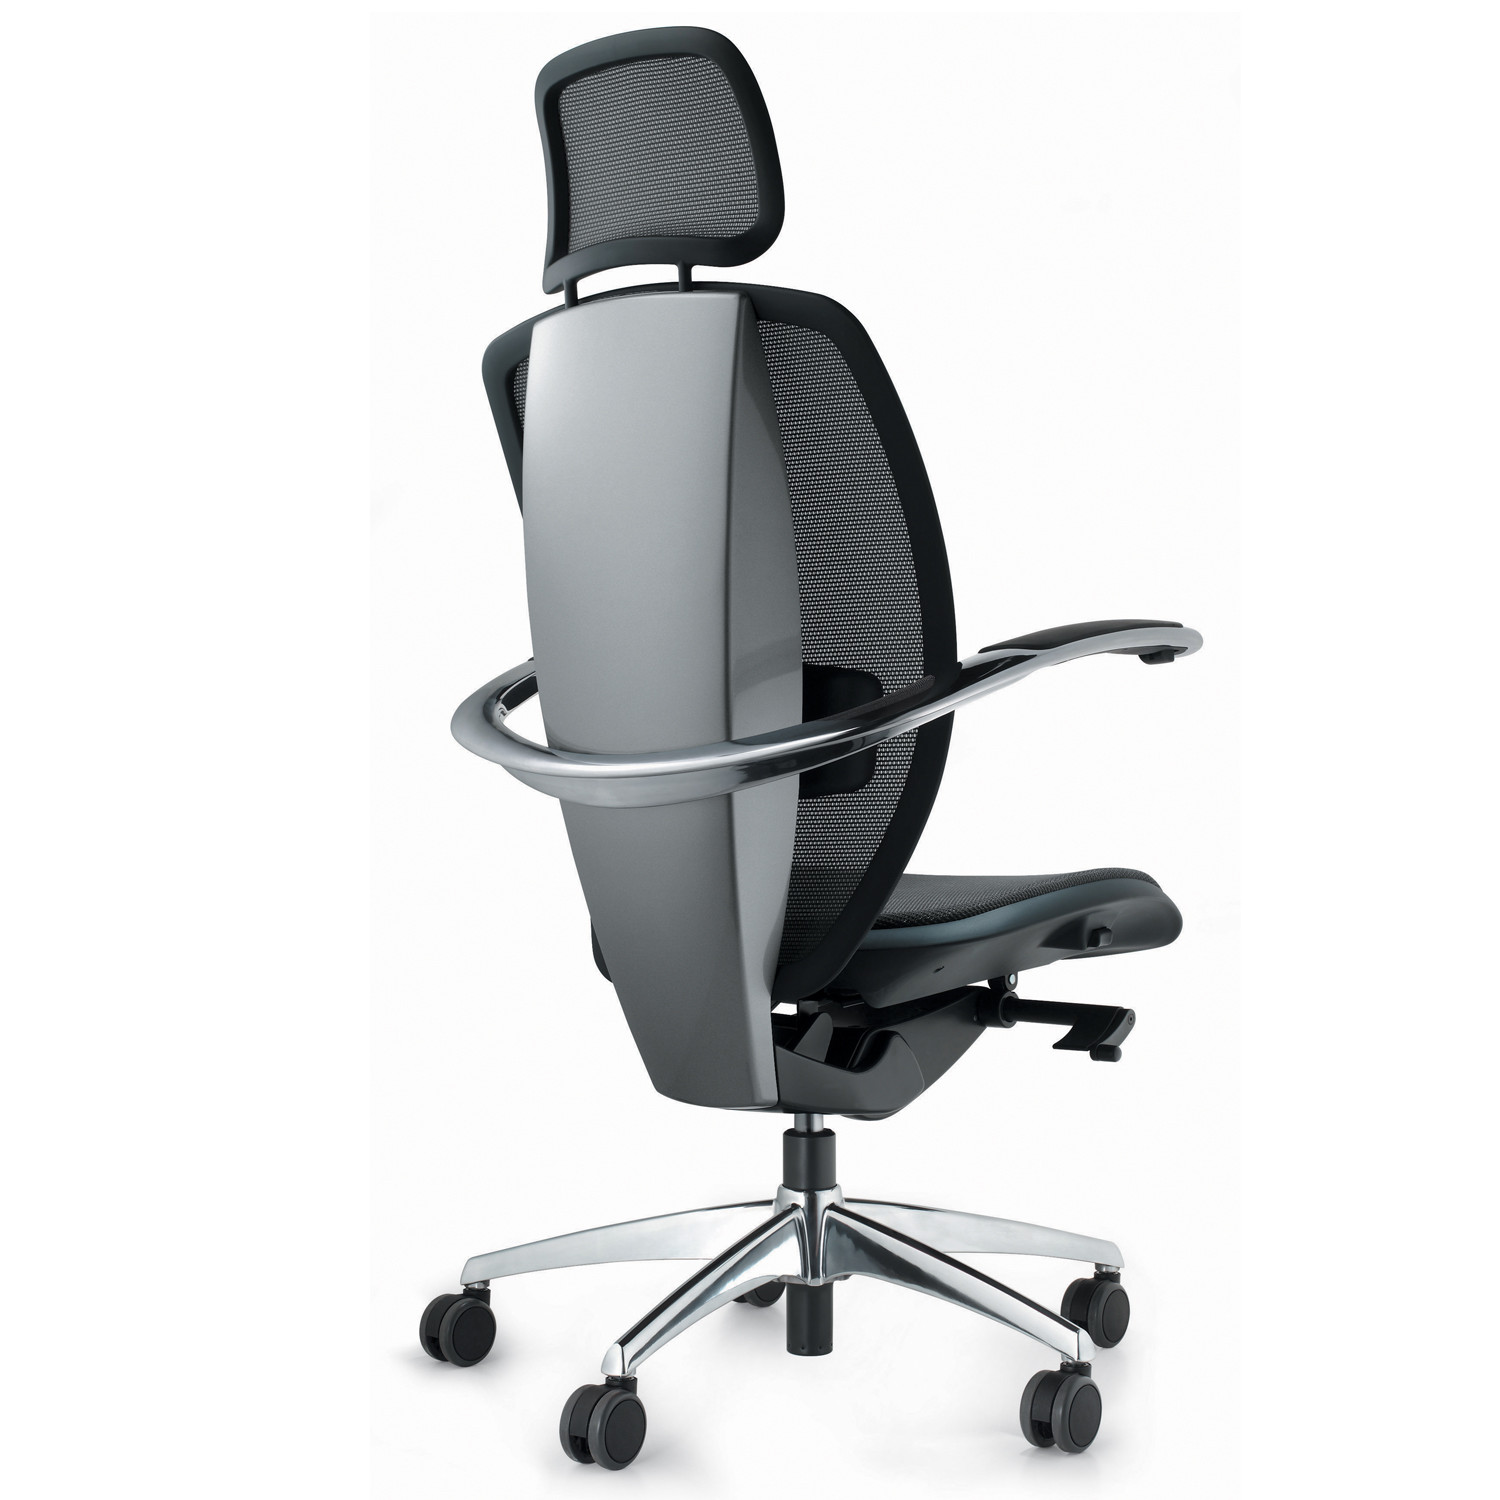 Xten Office Chair with headrest